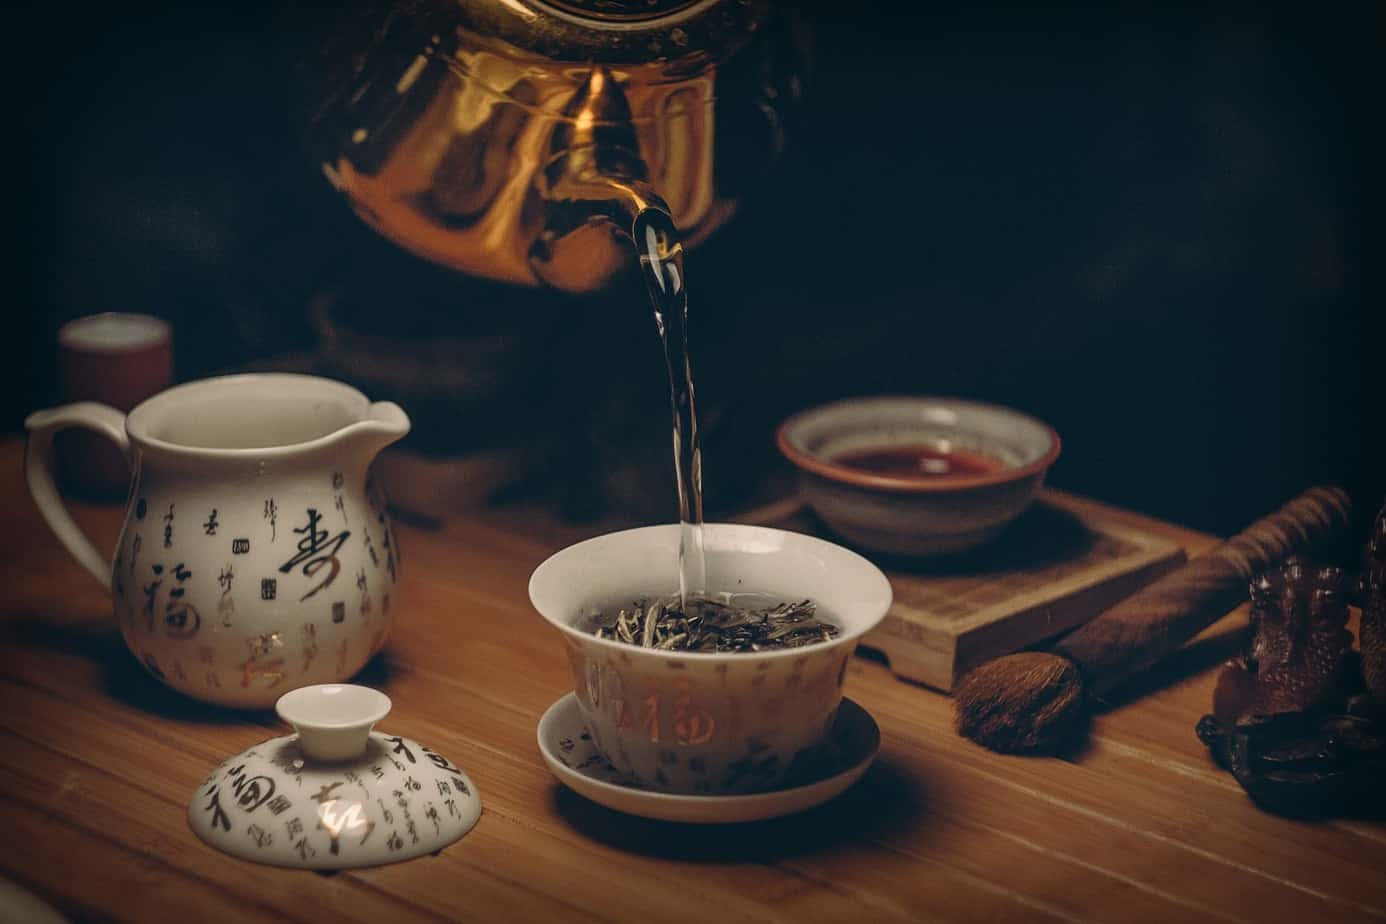 The prize that awaits: tea steeping